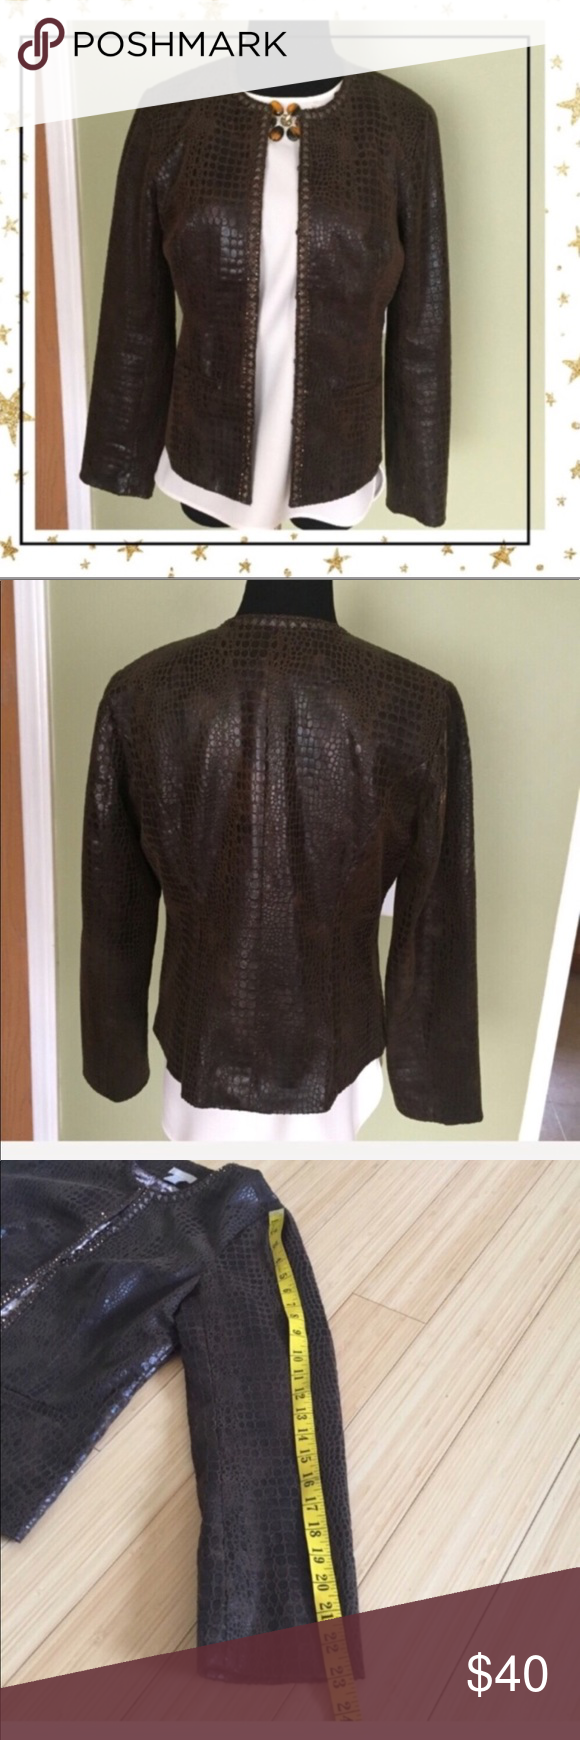 CHICOS Brown Faux Leather Jacket (FY10J) Brown faux